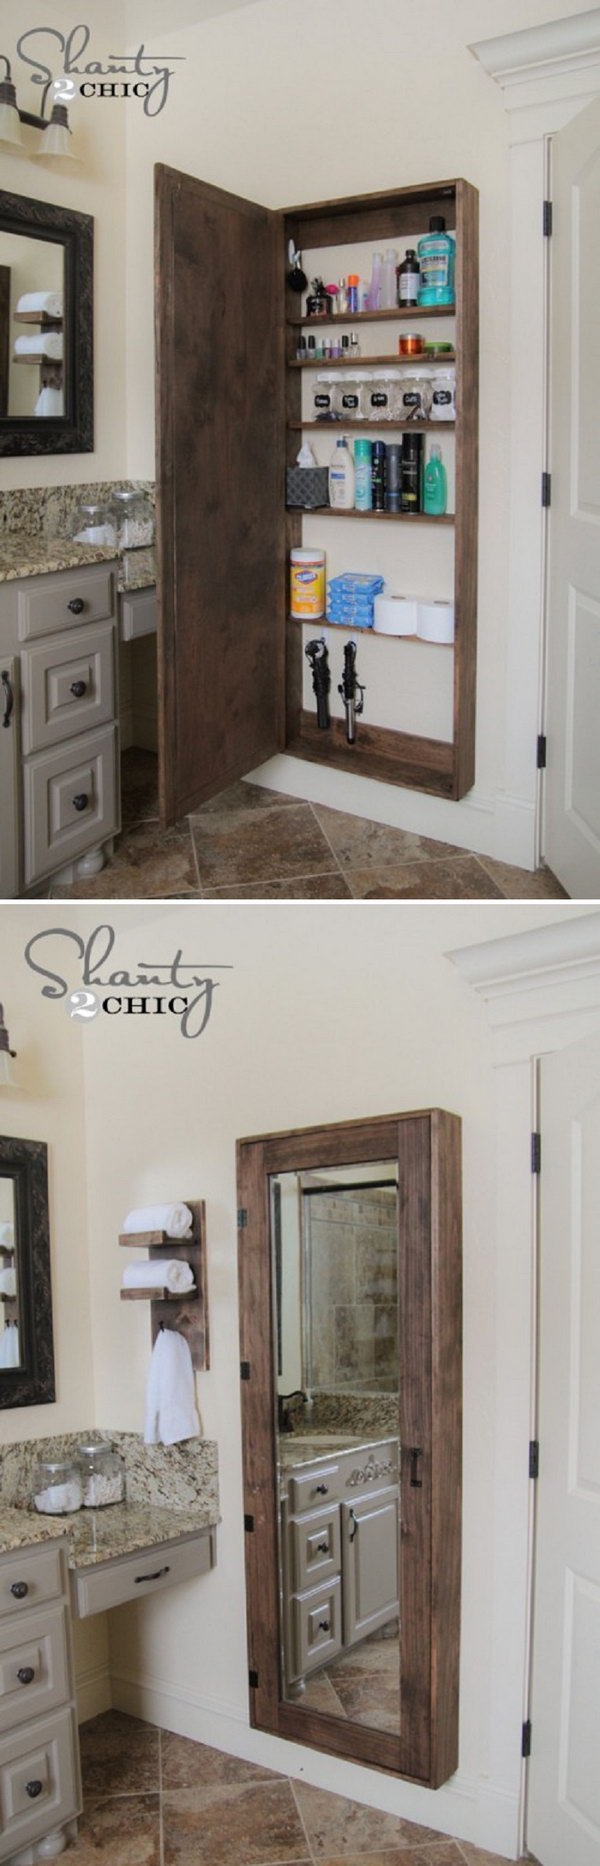 Bathroom Storage Case Behind The Mirror